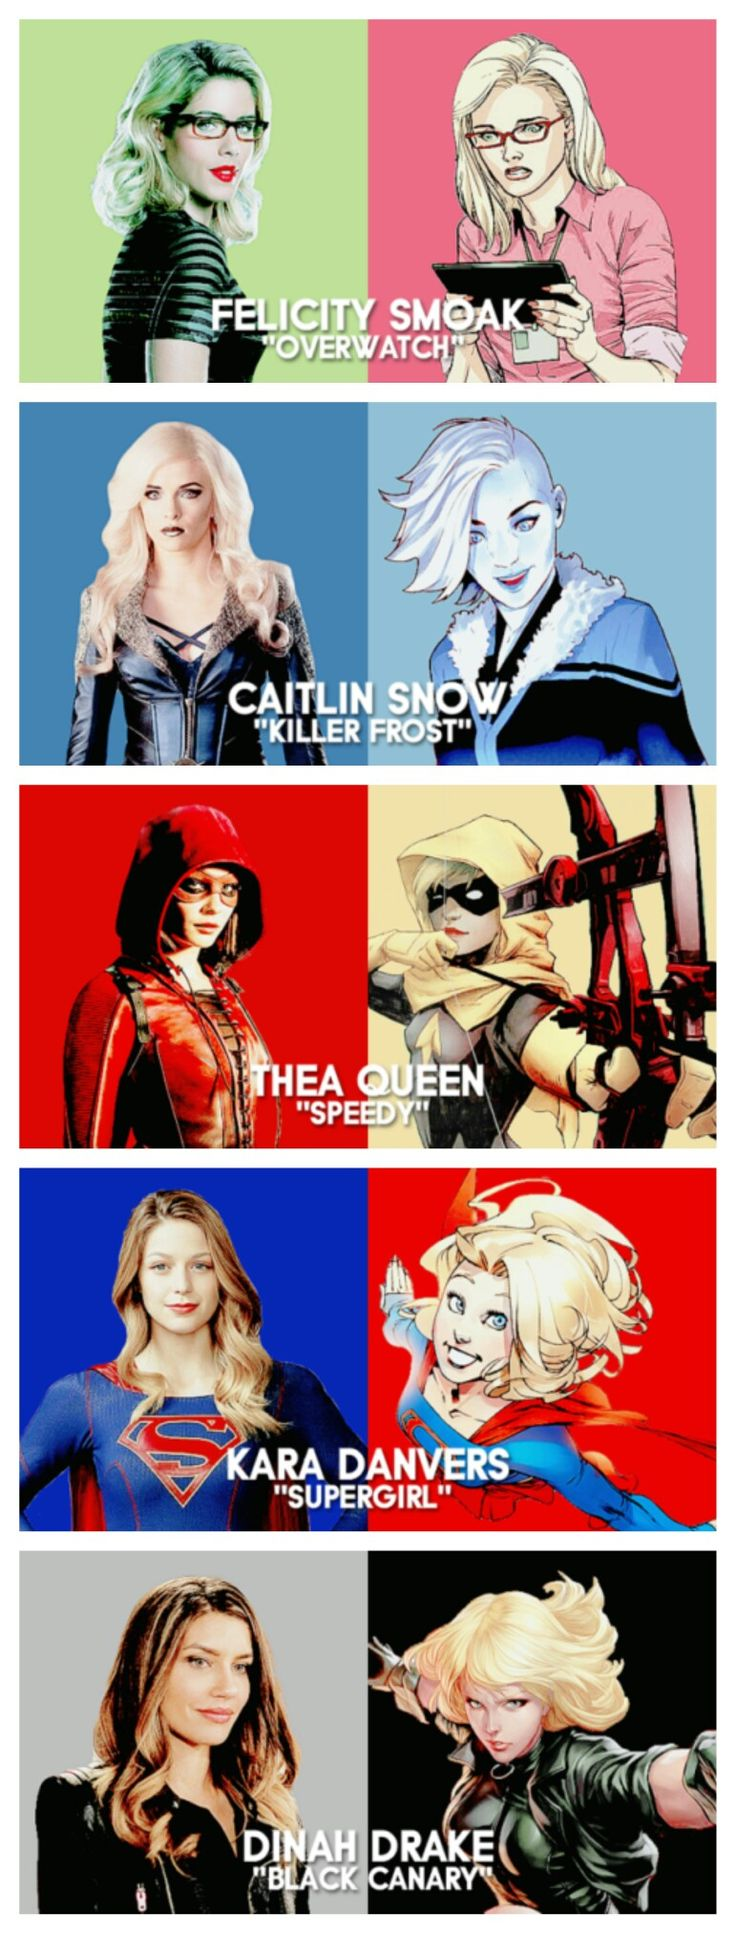 DCTV Queens | Felicity Smoak #Overwatch | Caitlin Snow #KillerFrost | Thea Queen #Speedy | Kara Danvers #Supergirl | Dinah Drake #Blackcanary